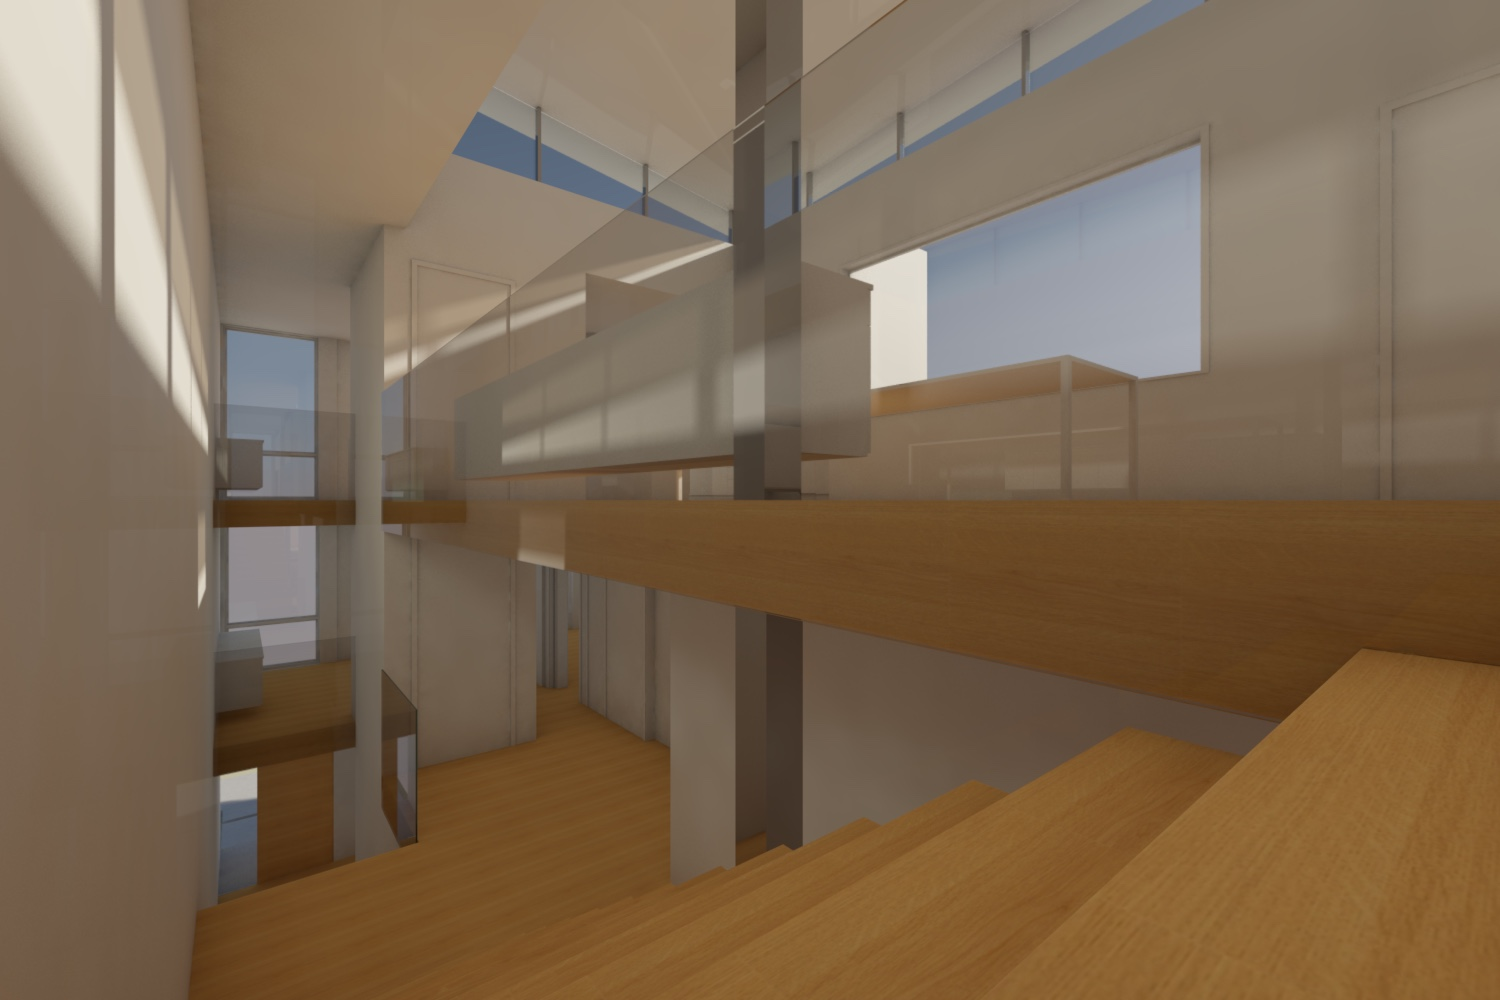 A two-unit townhouse in the Marina District of San Francisco. The program called for prioritizing opennes and natural light. The top floor is an open plan accomodating the social spaces. A clerestory allows natural light to flood the center of the space.